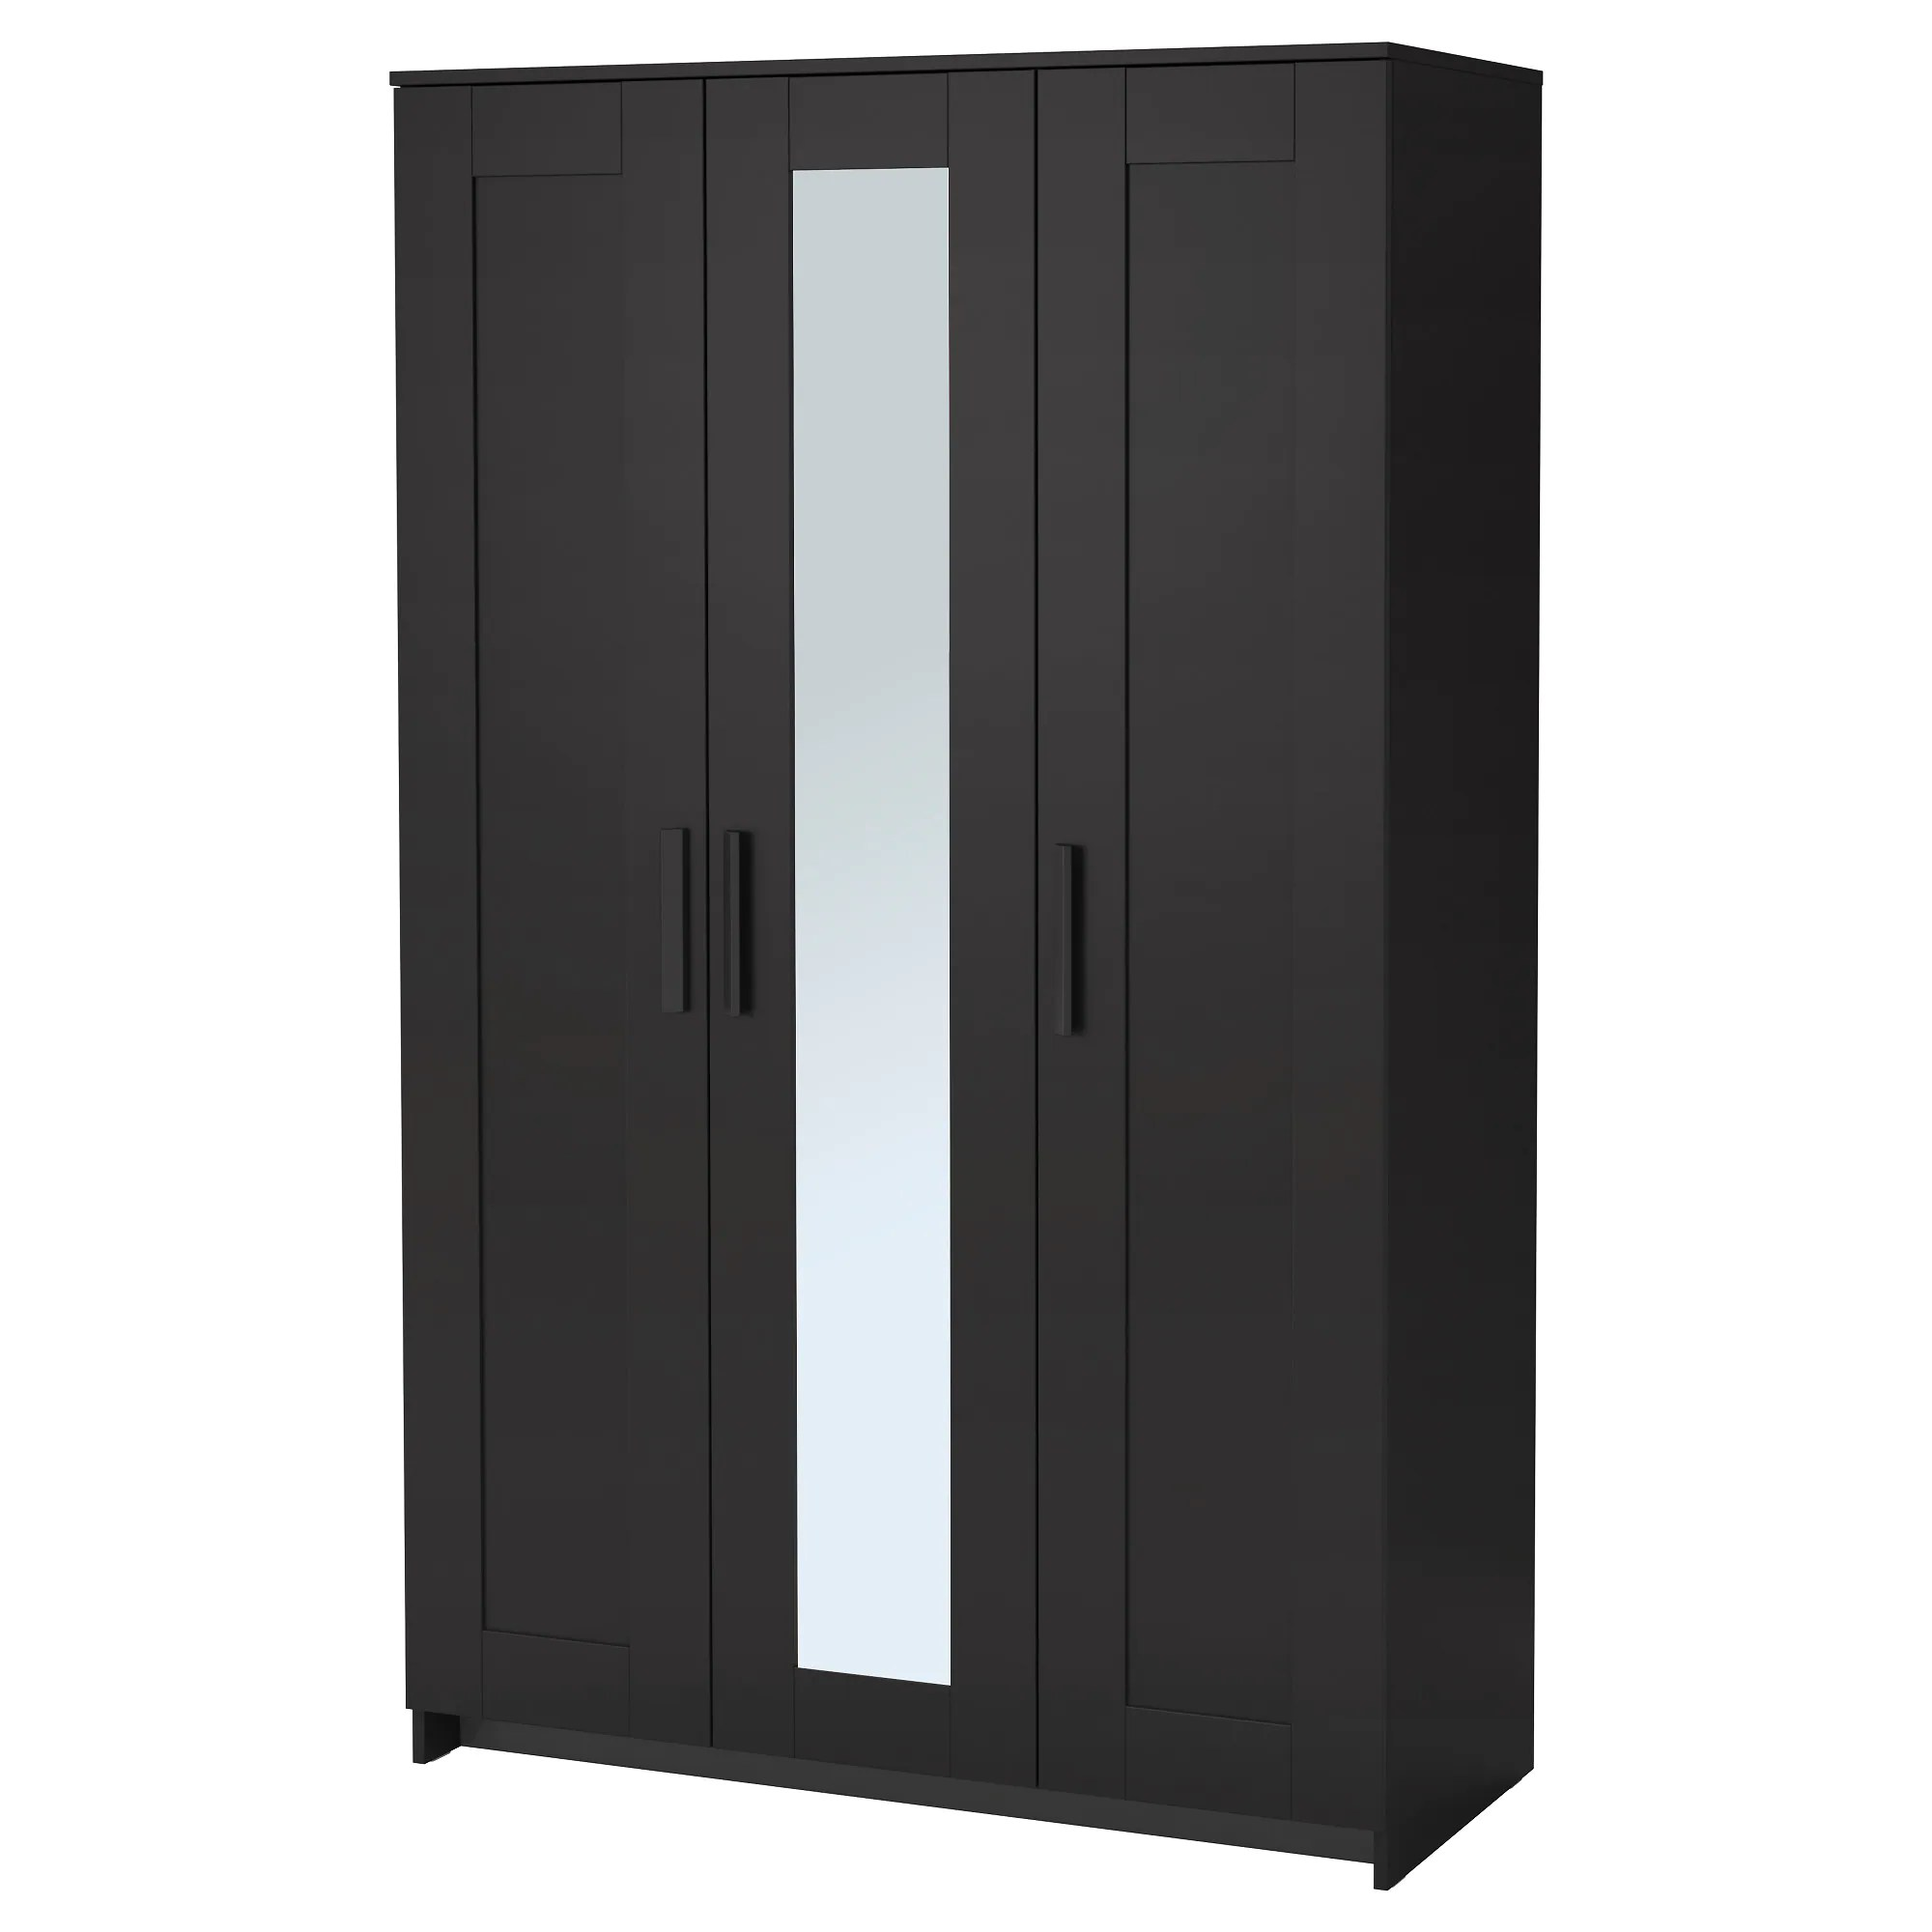 Ikea Pax Click And Collect Brimnes Wardrobe With 3 Doors Black